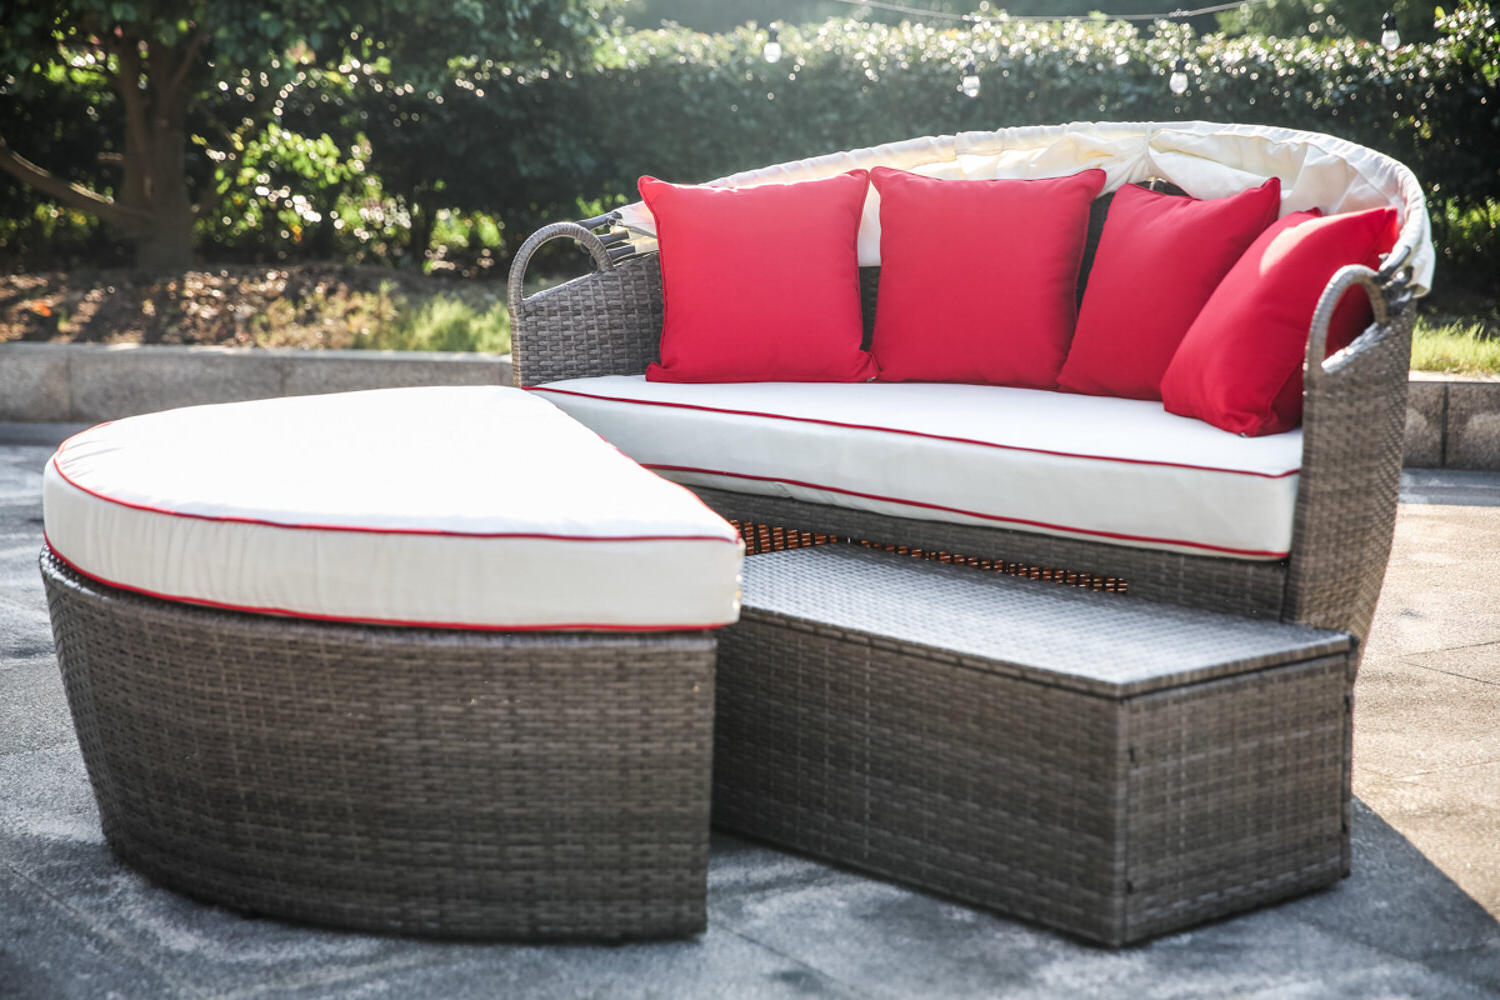 Preferred Fansler Patio Daybed With Cushions For Beal Patio Daybeds With Cushions (Gallery 10 of 25)